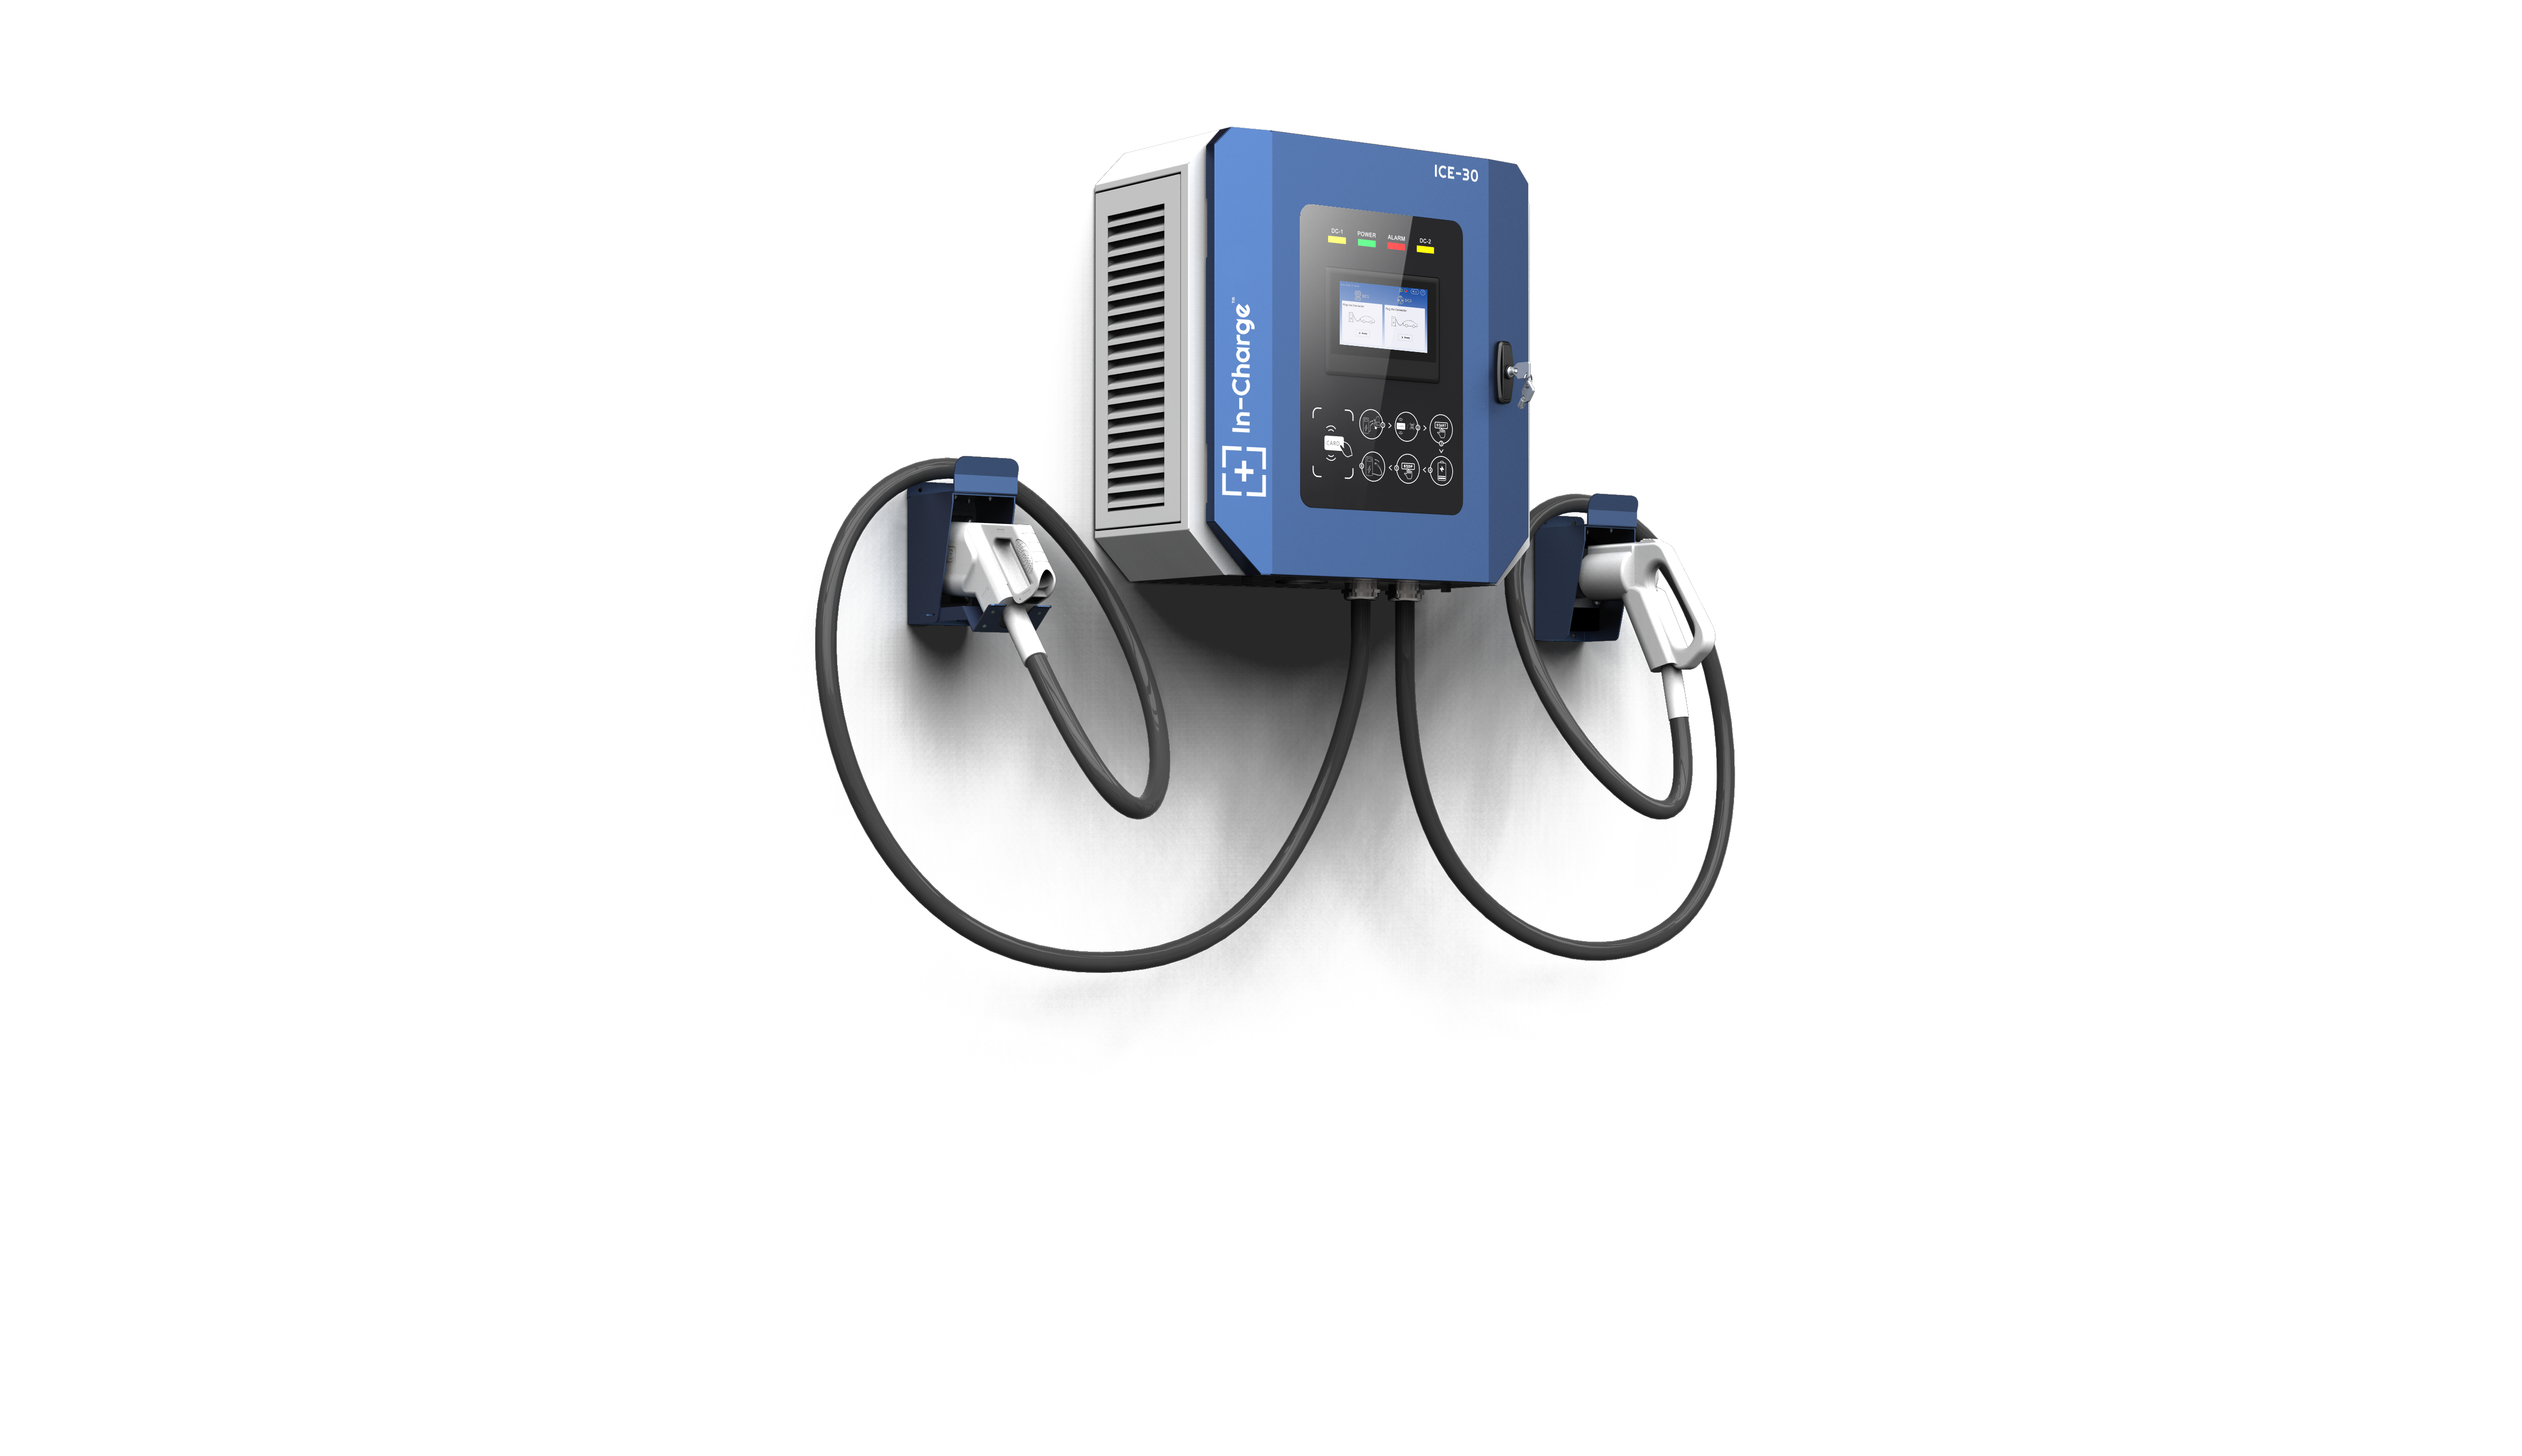 Read more about the article IN-CHARGE ENERGY RELEASES INDUSTRY'S FIRST BI-DIRECTIONAL DC WALLBOX CHARGER